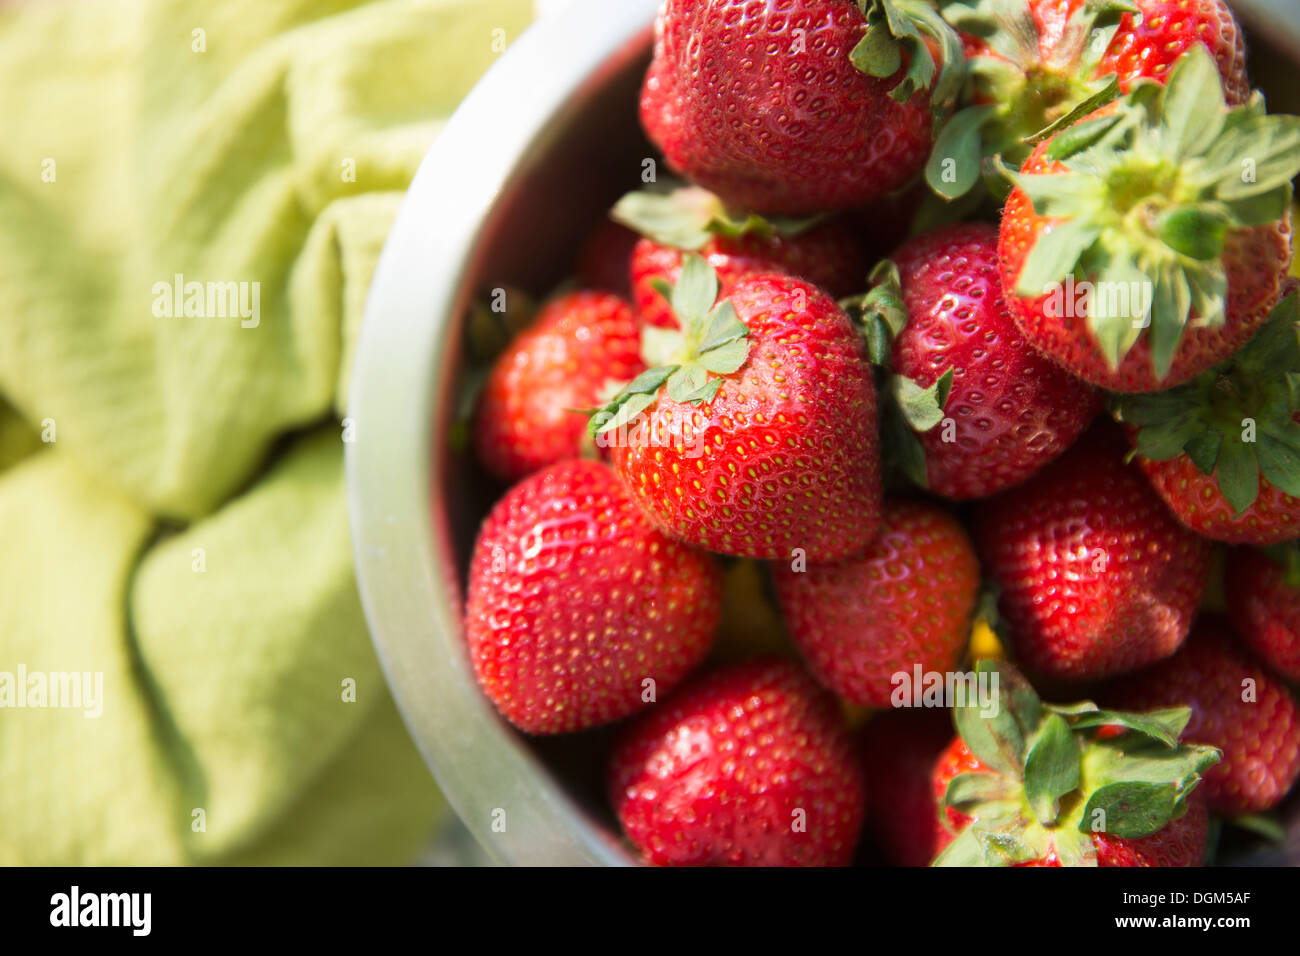 On the farm. A bowl of freshly picked organic fruits, strawberries. - Stock Image